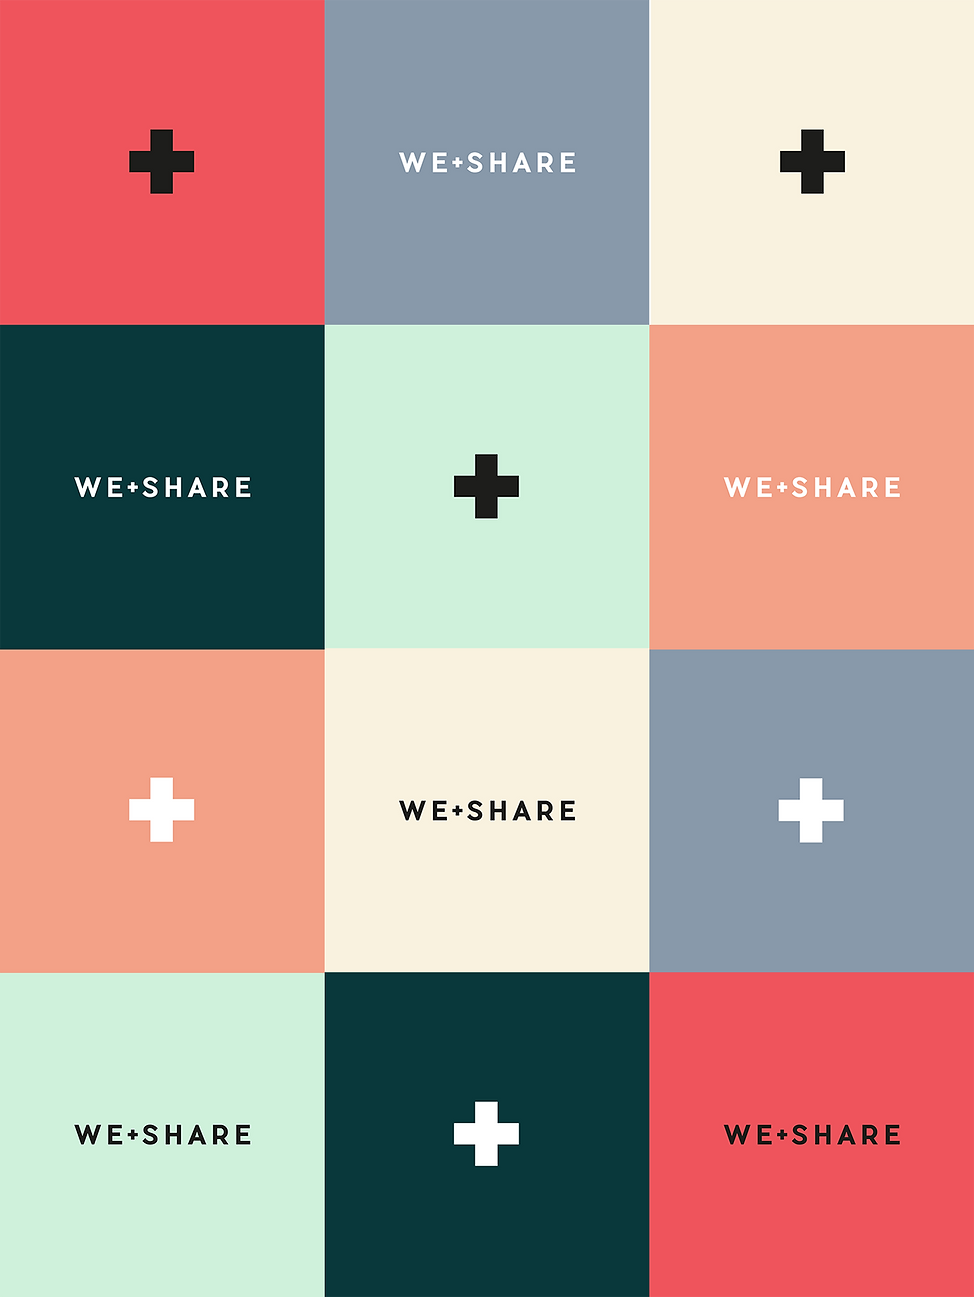 Weshare-logos.png